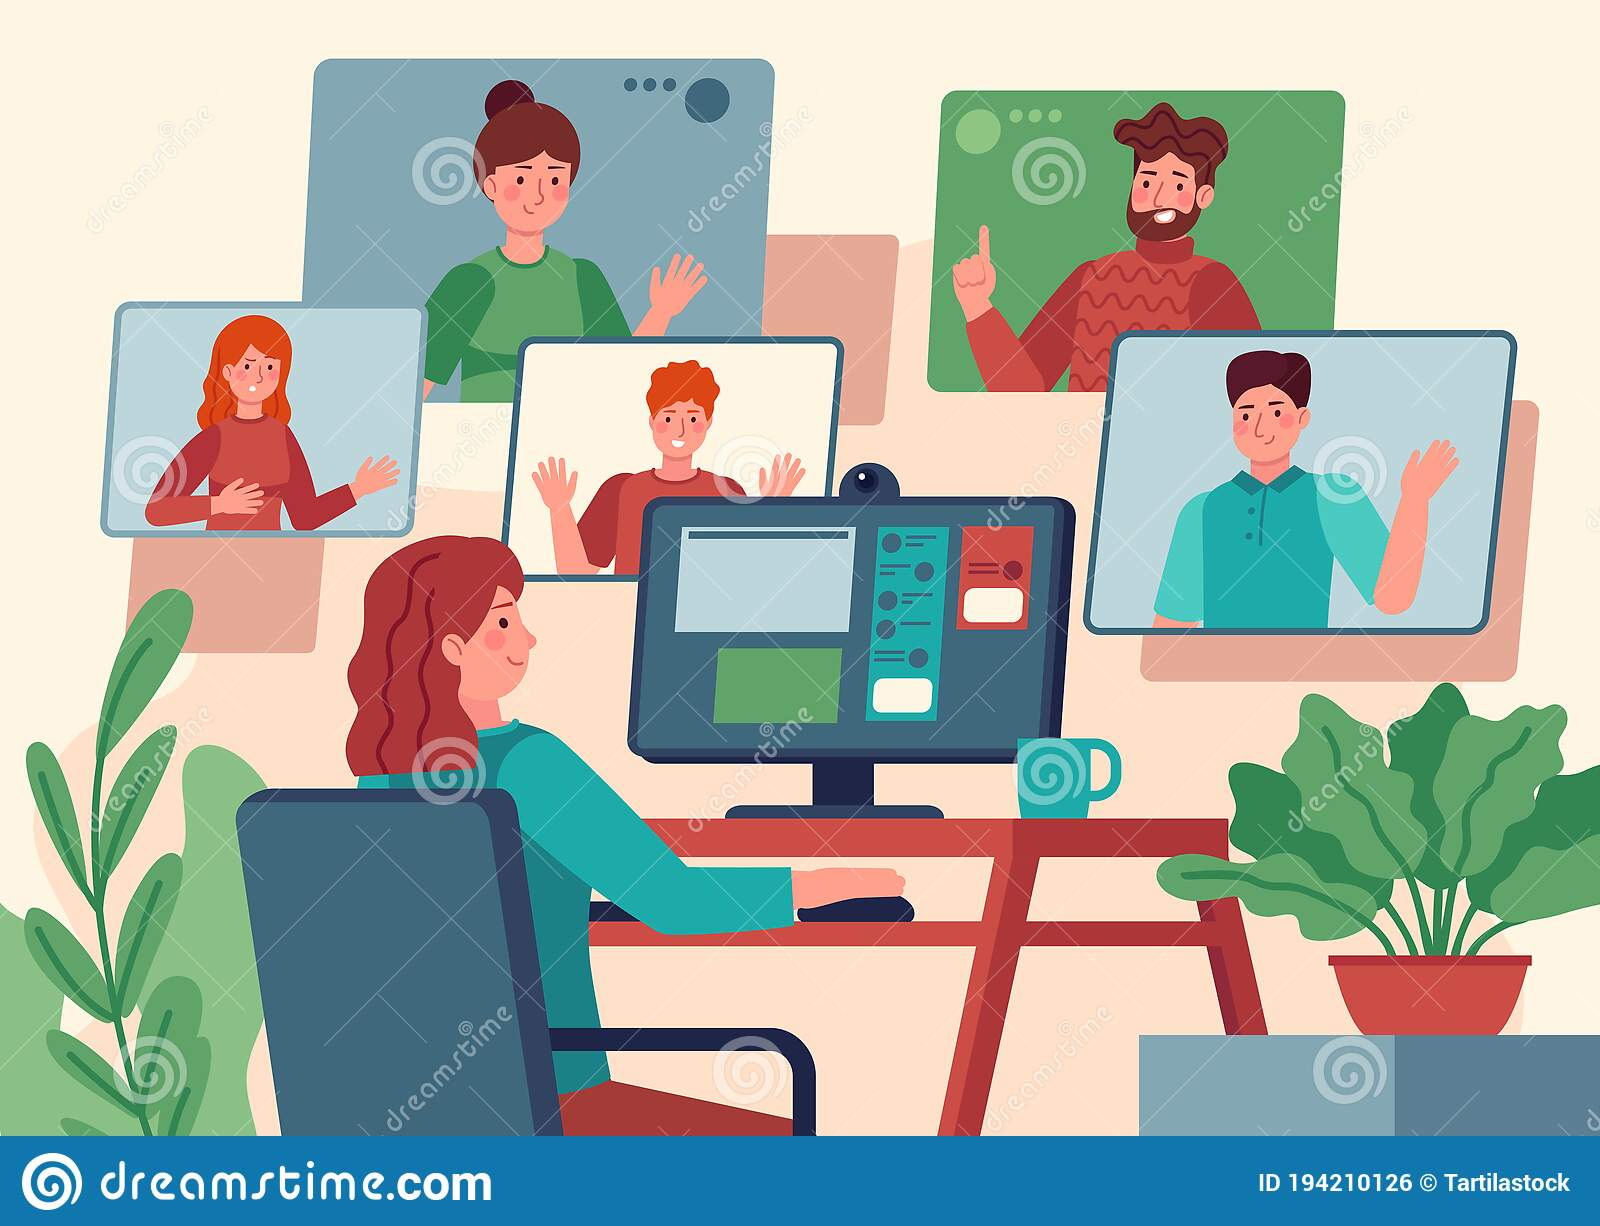 Video Conference. Woman At Home Chatting With Friends On Computer Screen,  Online Communication With Coworkers, Video Stock Vector - Illustration of  cyberspace, conversation: 194210126